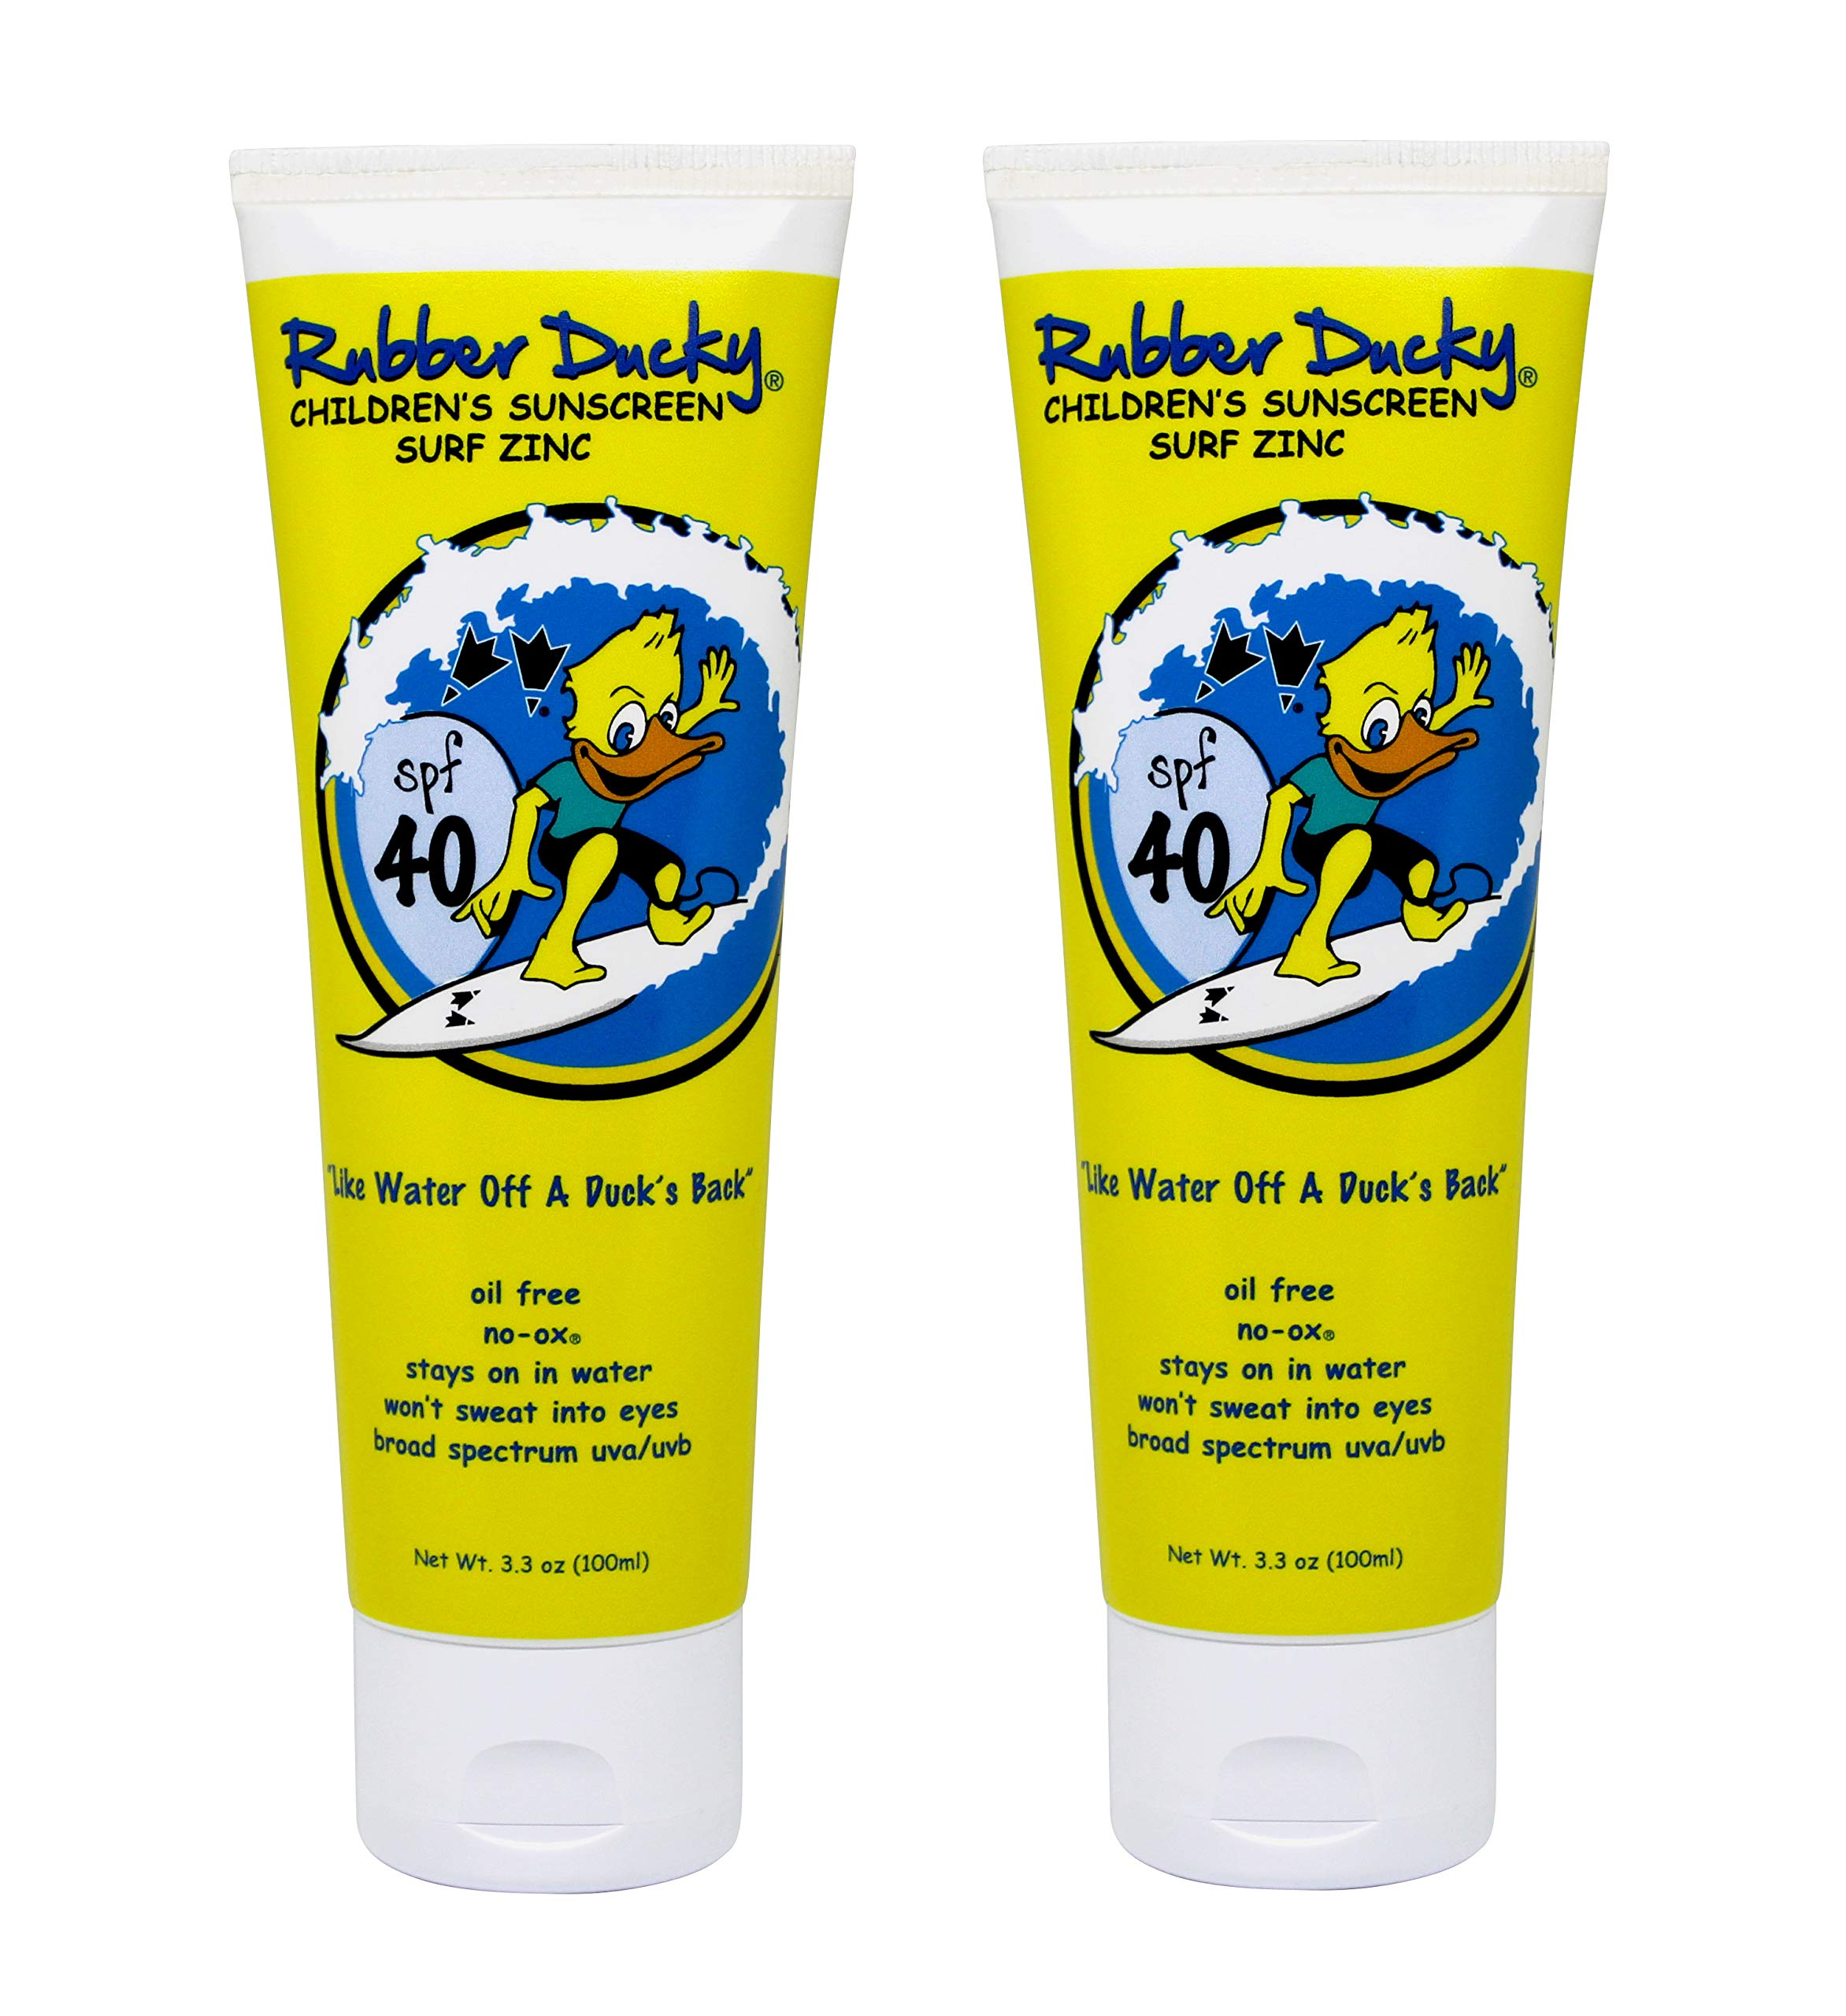 Rubber Ducky | SPF 40 children's Sunscreen - surf zinc, invisible, no-ox - 3.3 ounce - set of 2 by Rubber Ducky